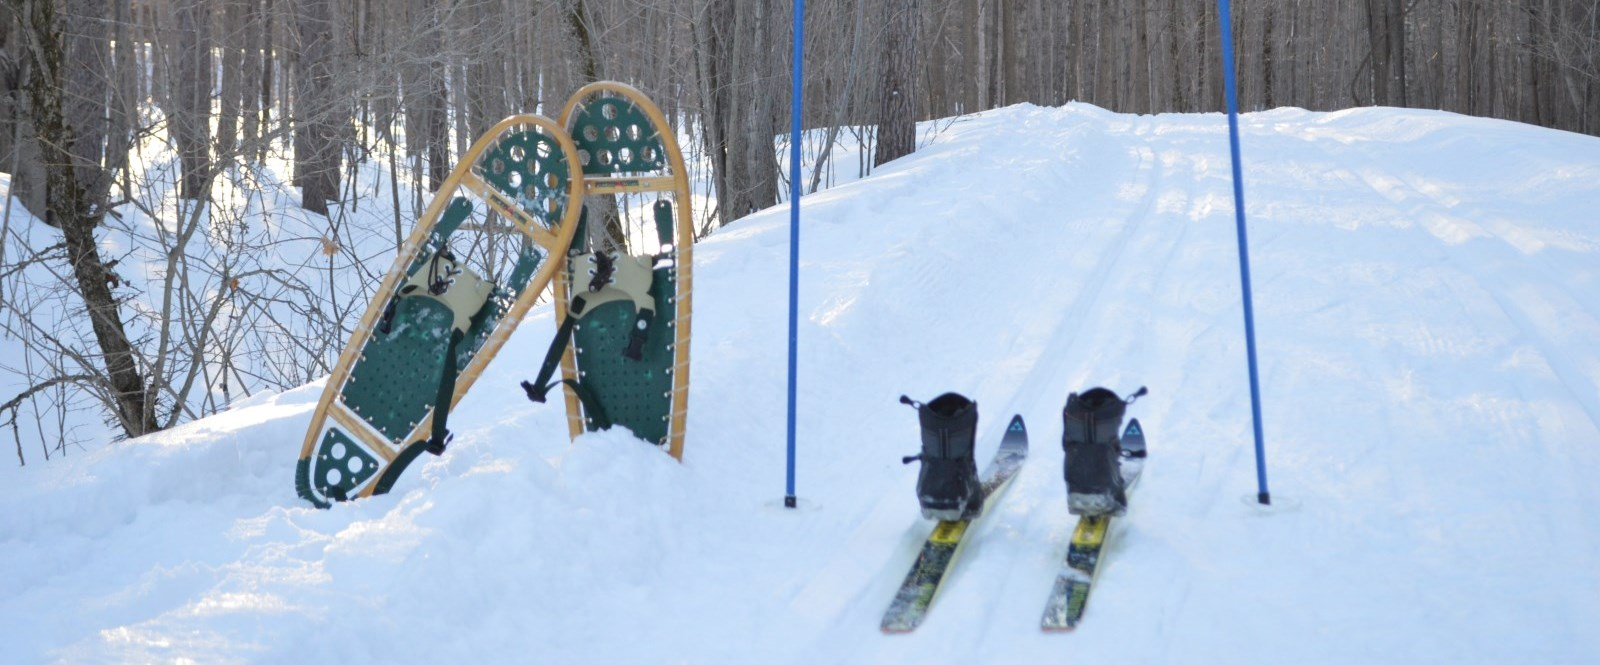 snowshoes and cross country skis on snowy trail in guindon park